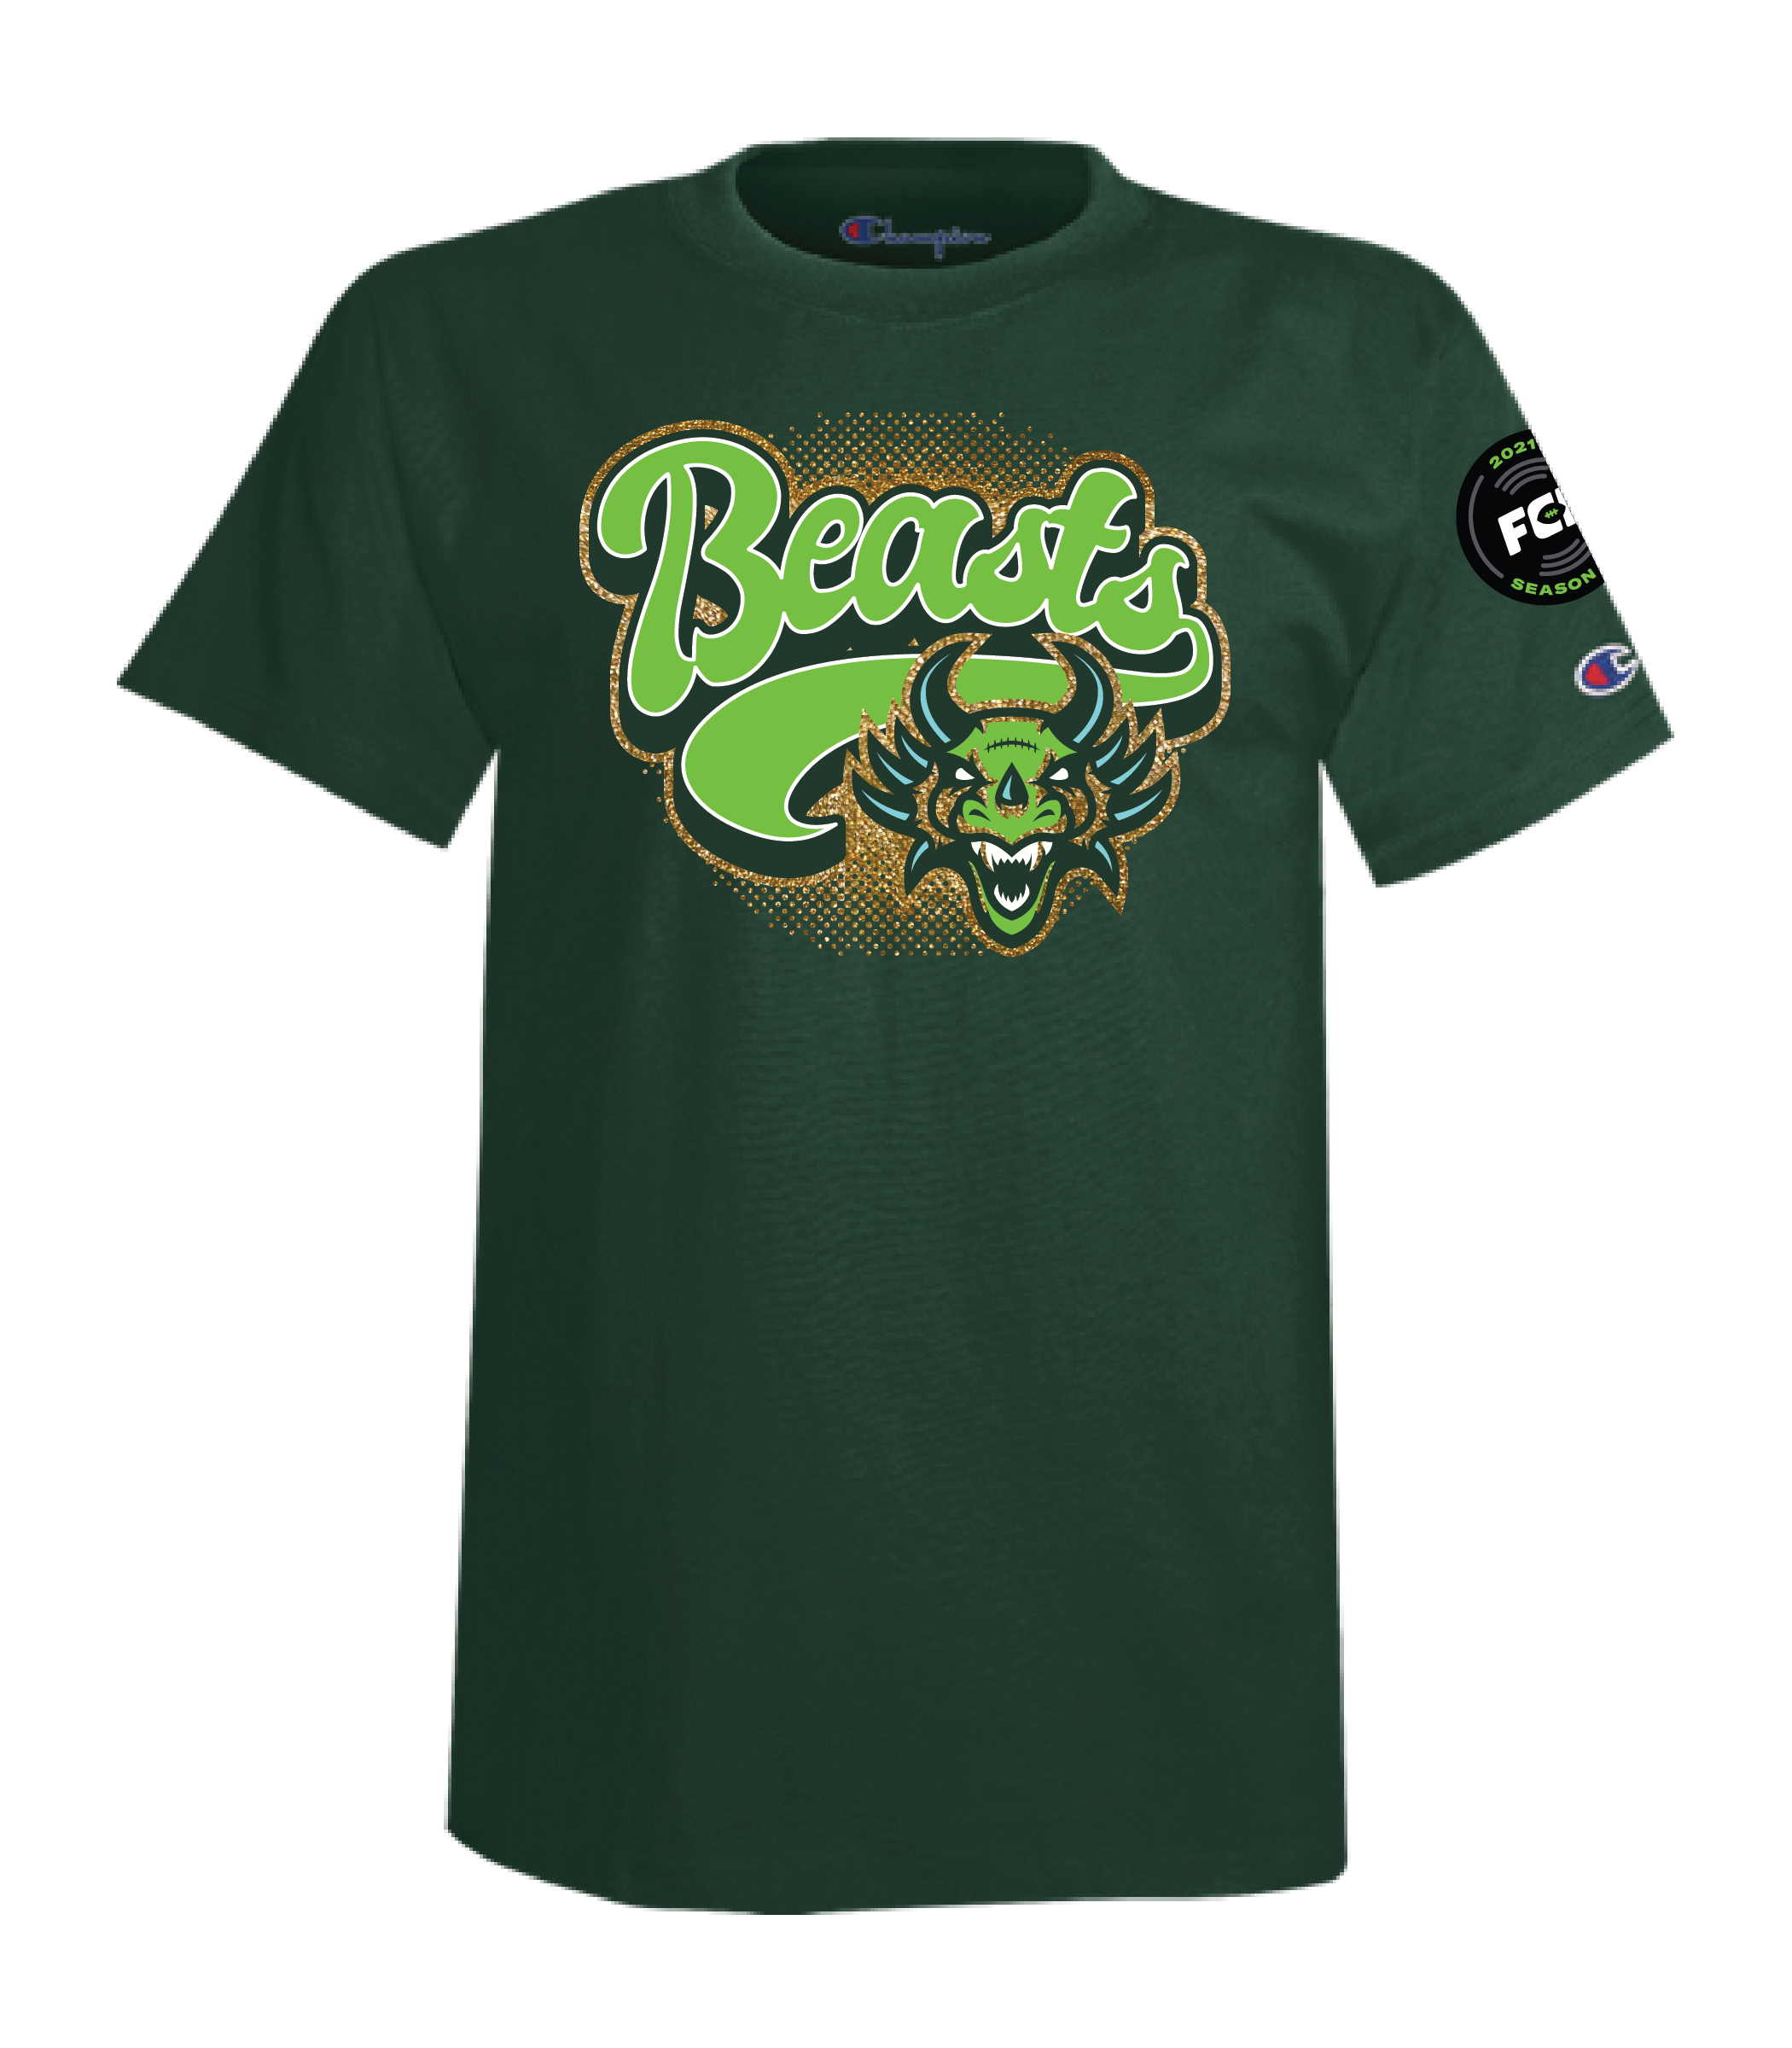 Beasts X Champion Collection Tee product image (1)